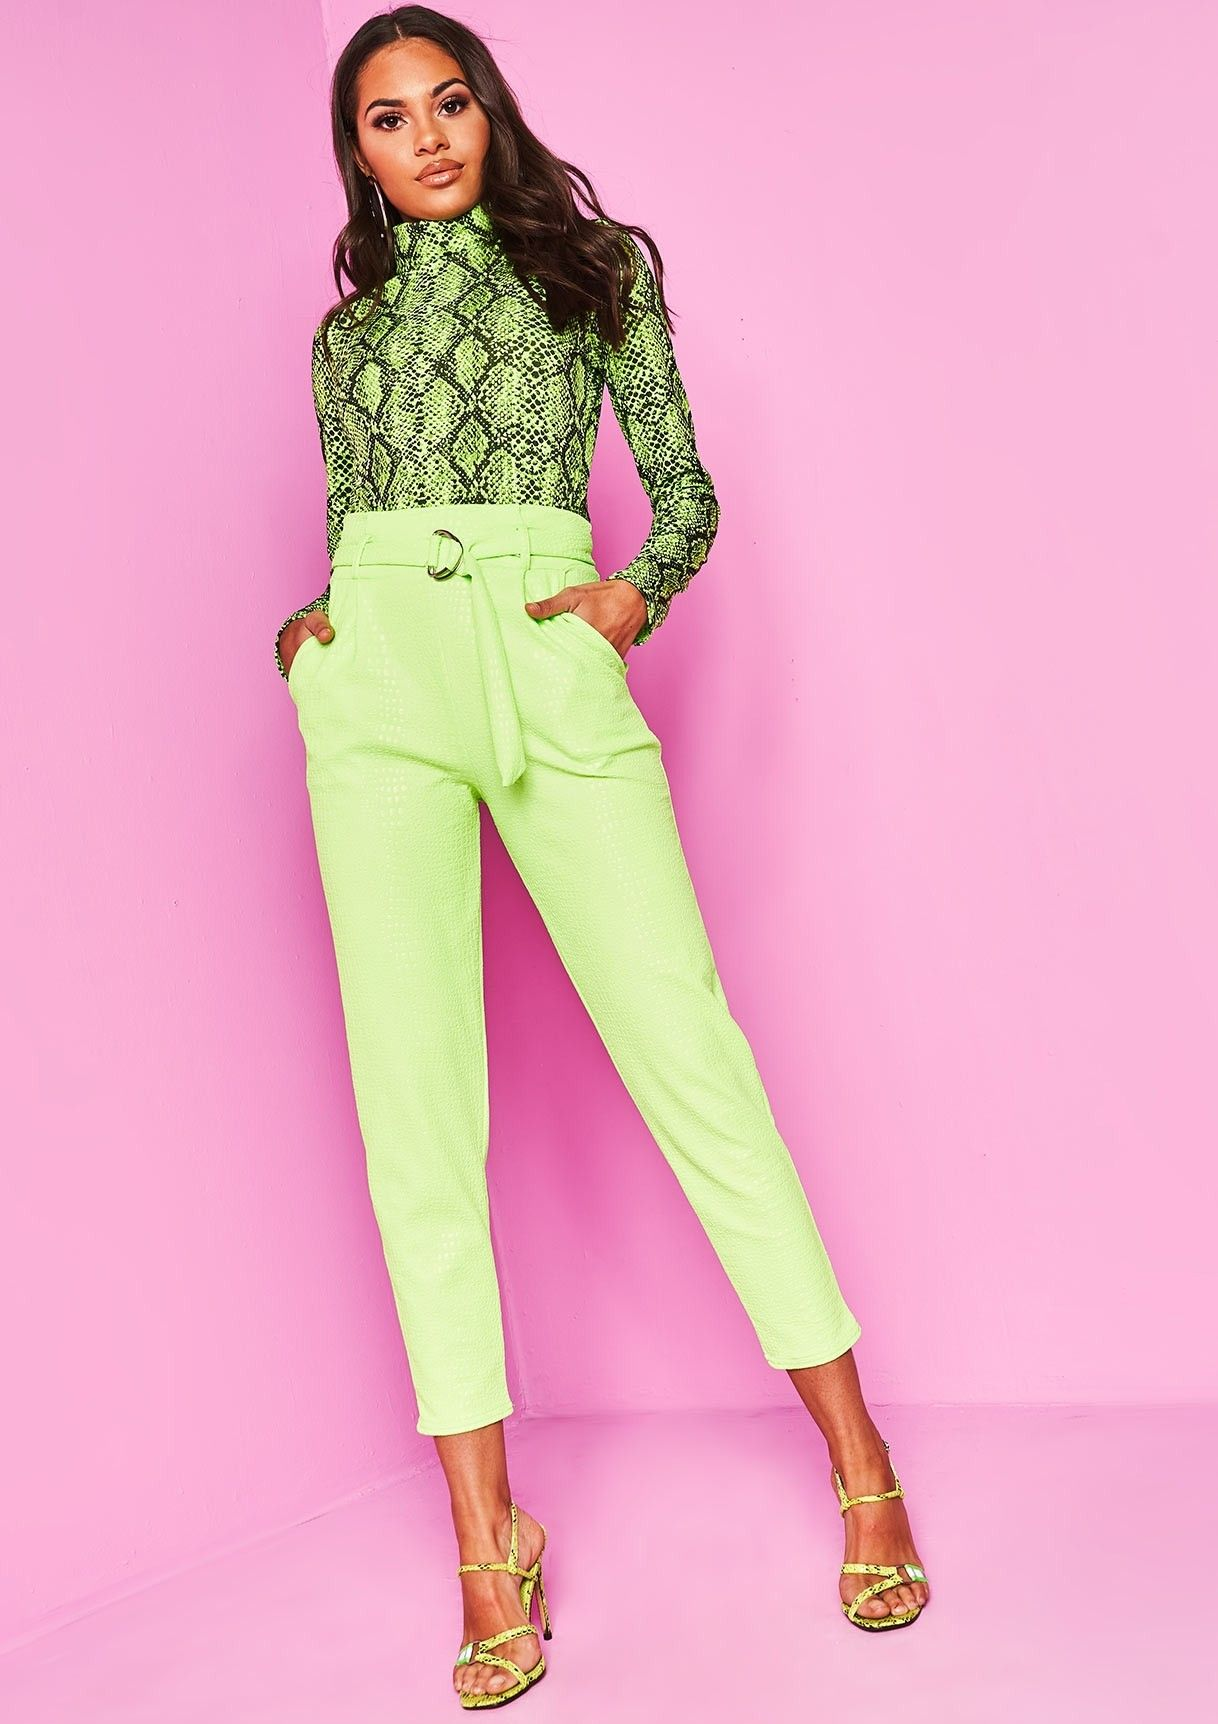 3589f72dd5be00 Missyempire - Jade Neon Green Snake Print Belted Skinny Trousers